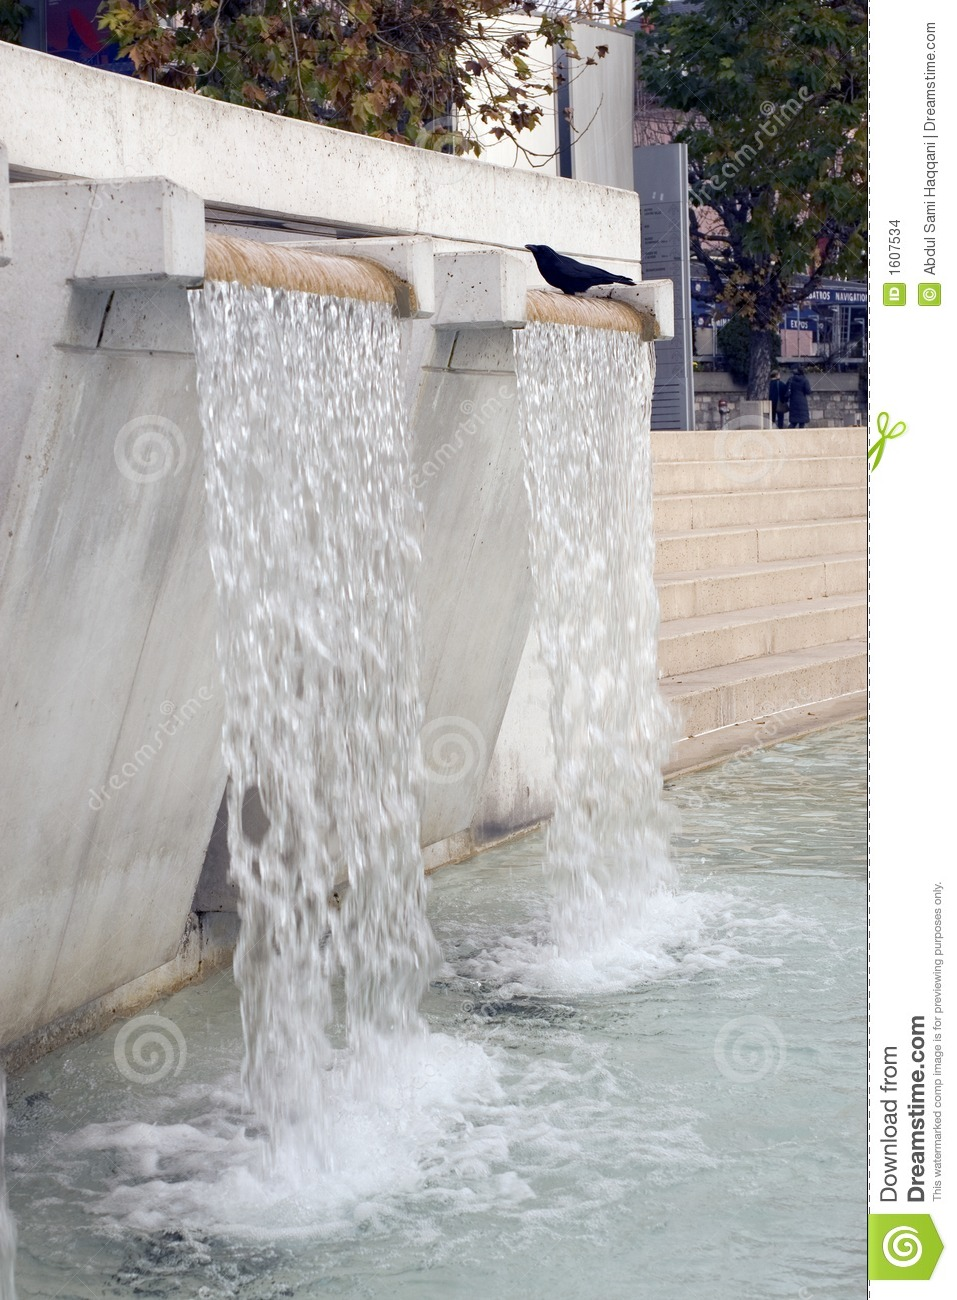 Artificial Waterfall Fountain 5868 Stock Photo Image 1607534